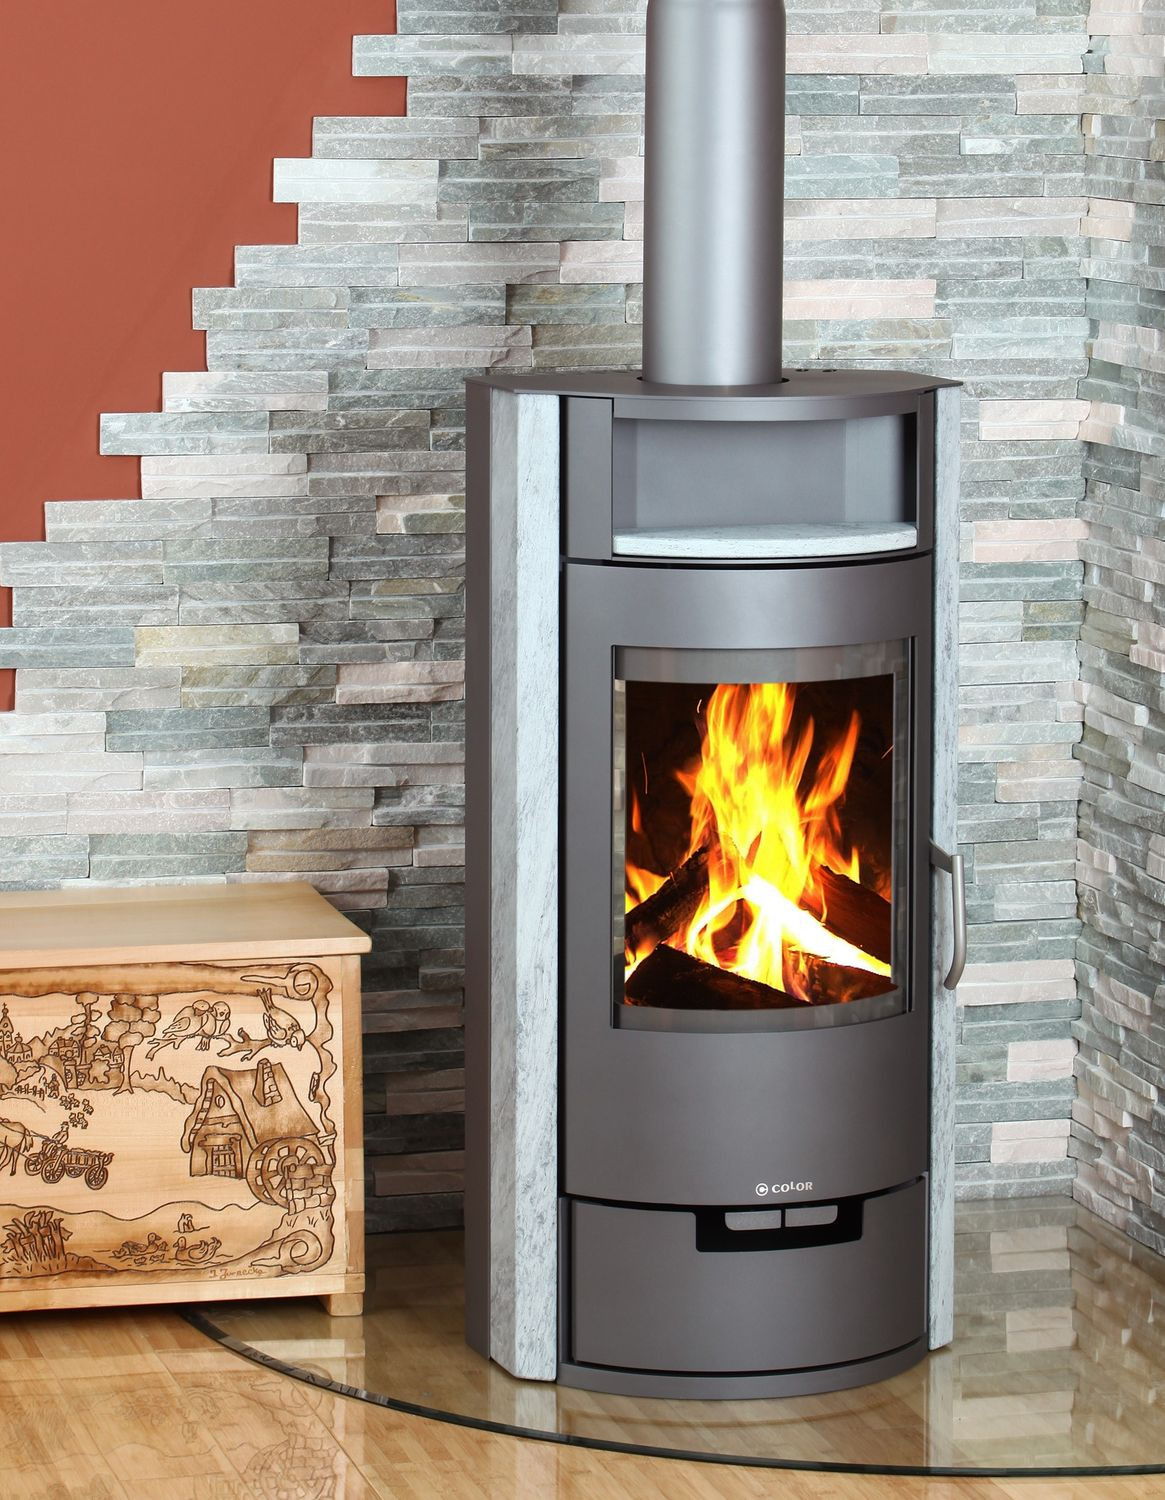 Contemporary wood-burning stove - A5 VERTIGO SERPENTINO - Color ...